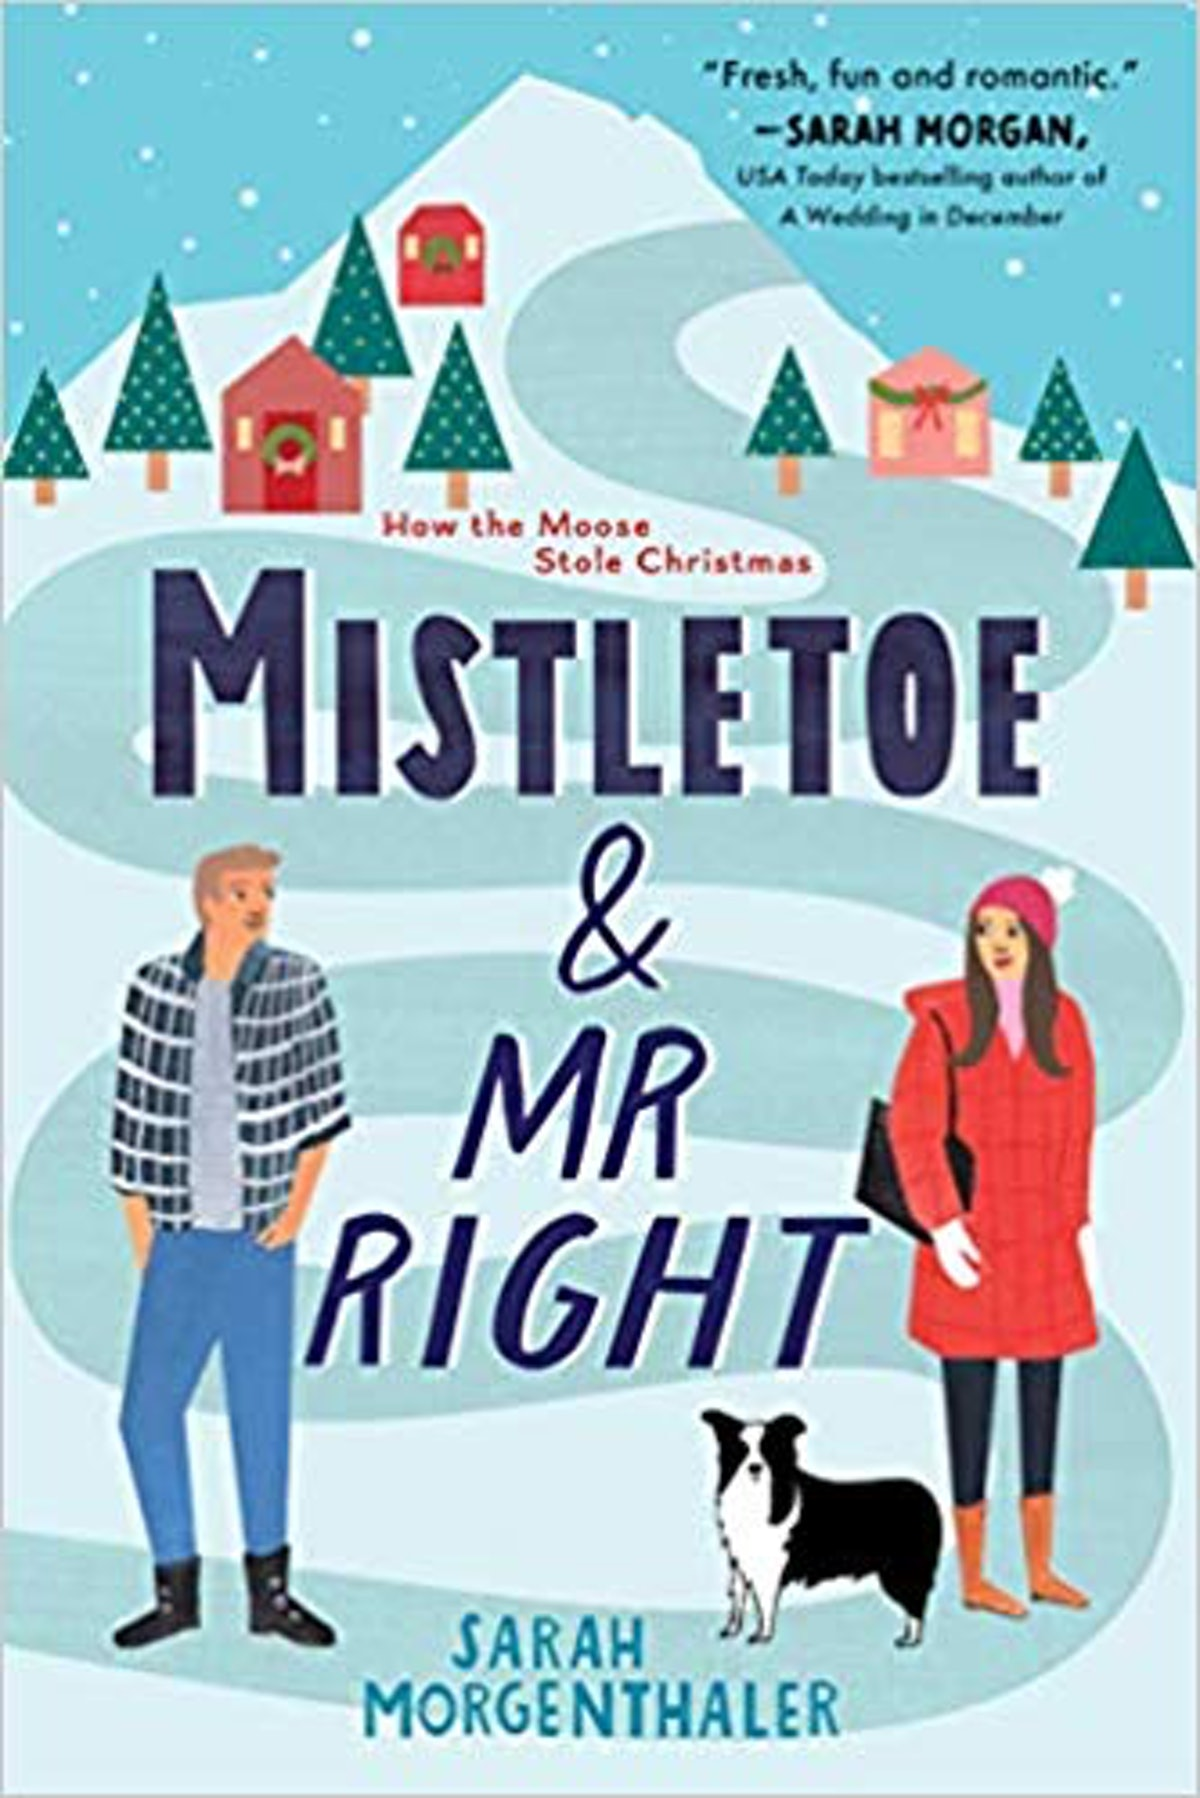 'Mistletoe and Mr. Right' by Sarah Morgenthaler